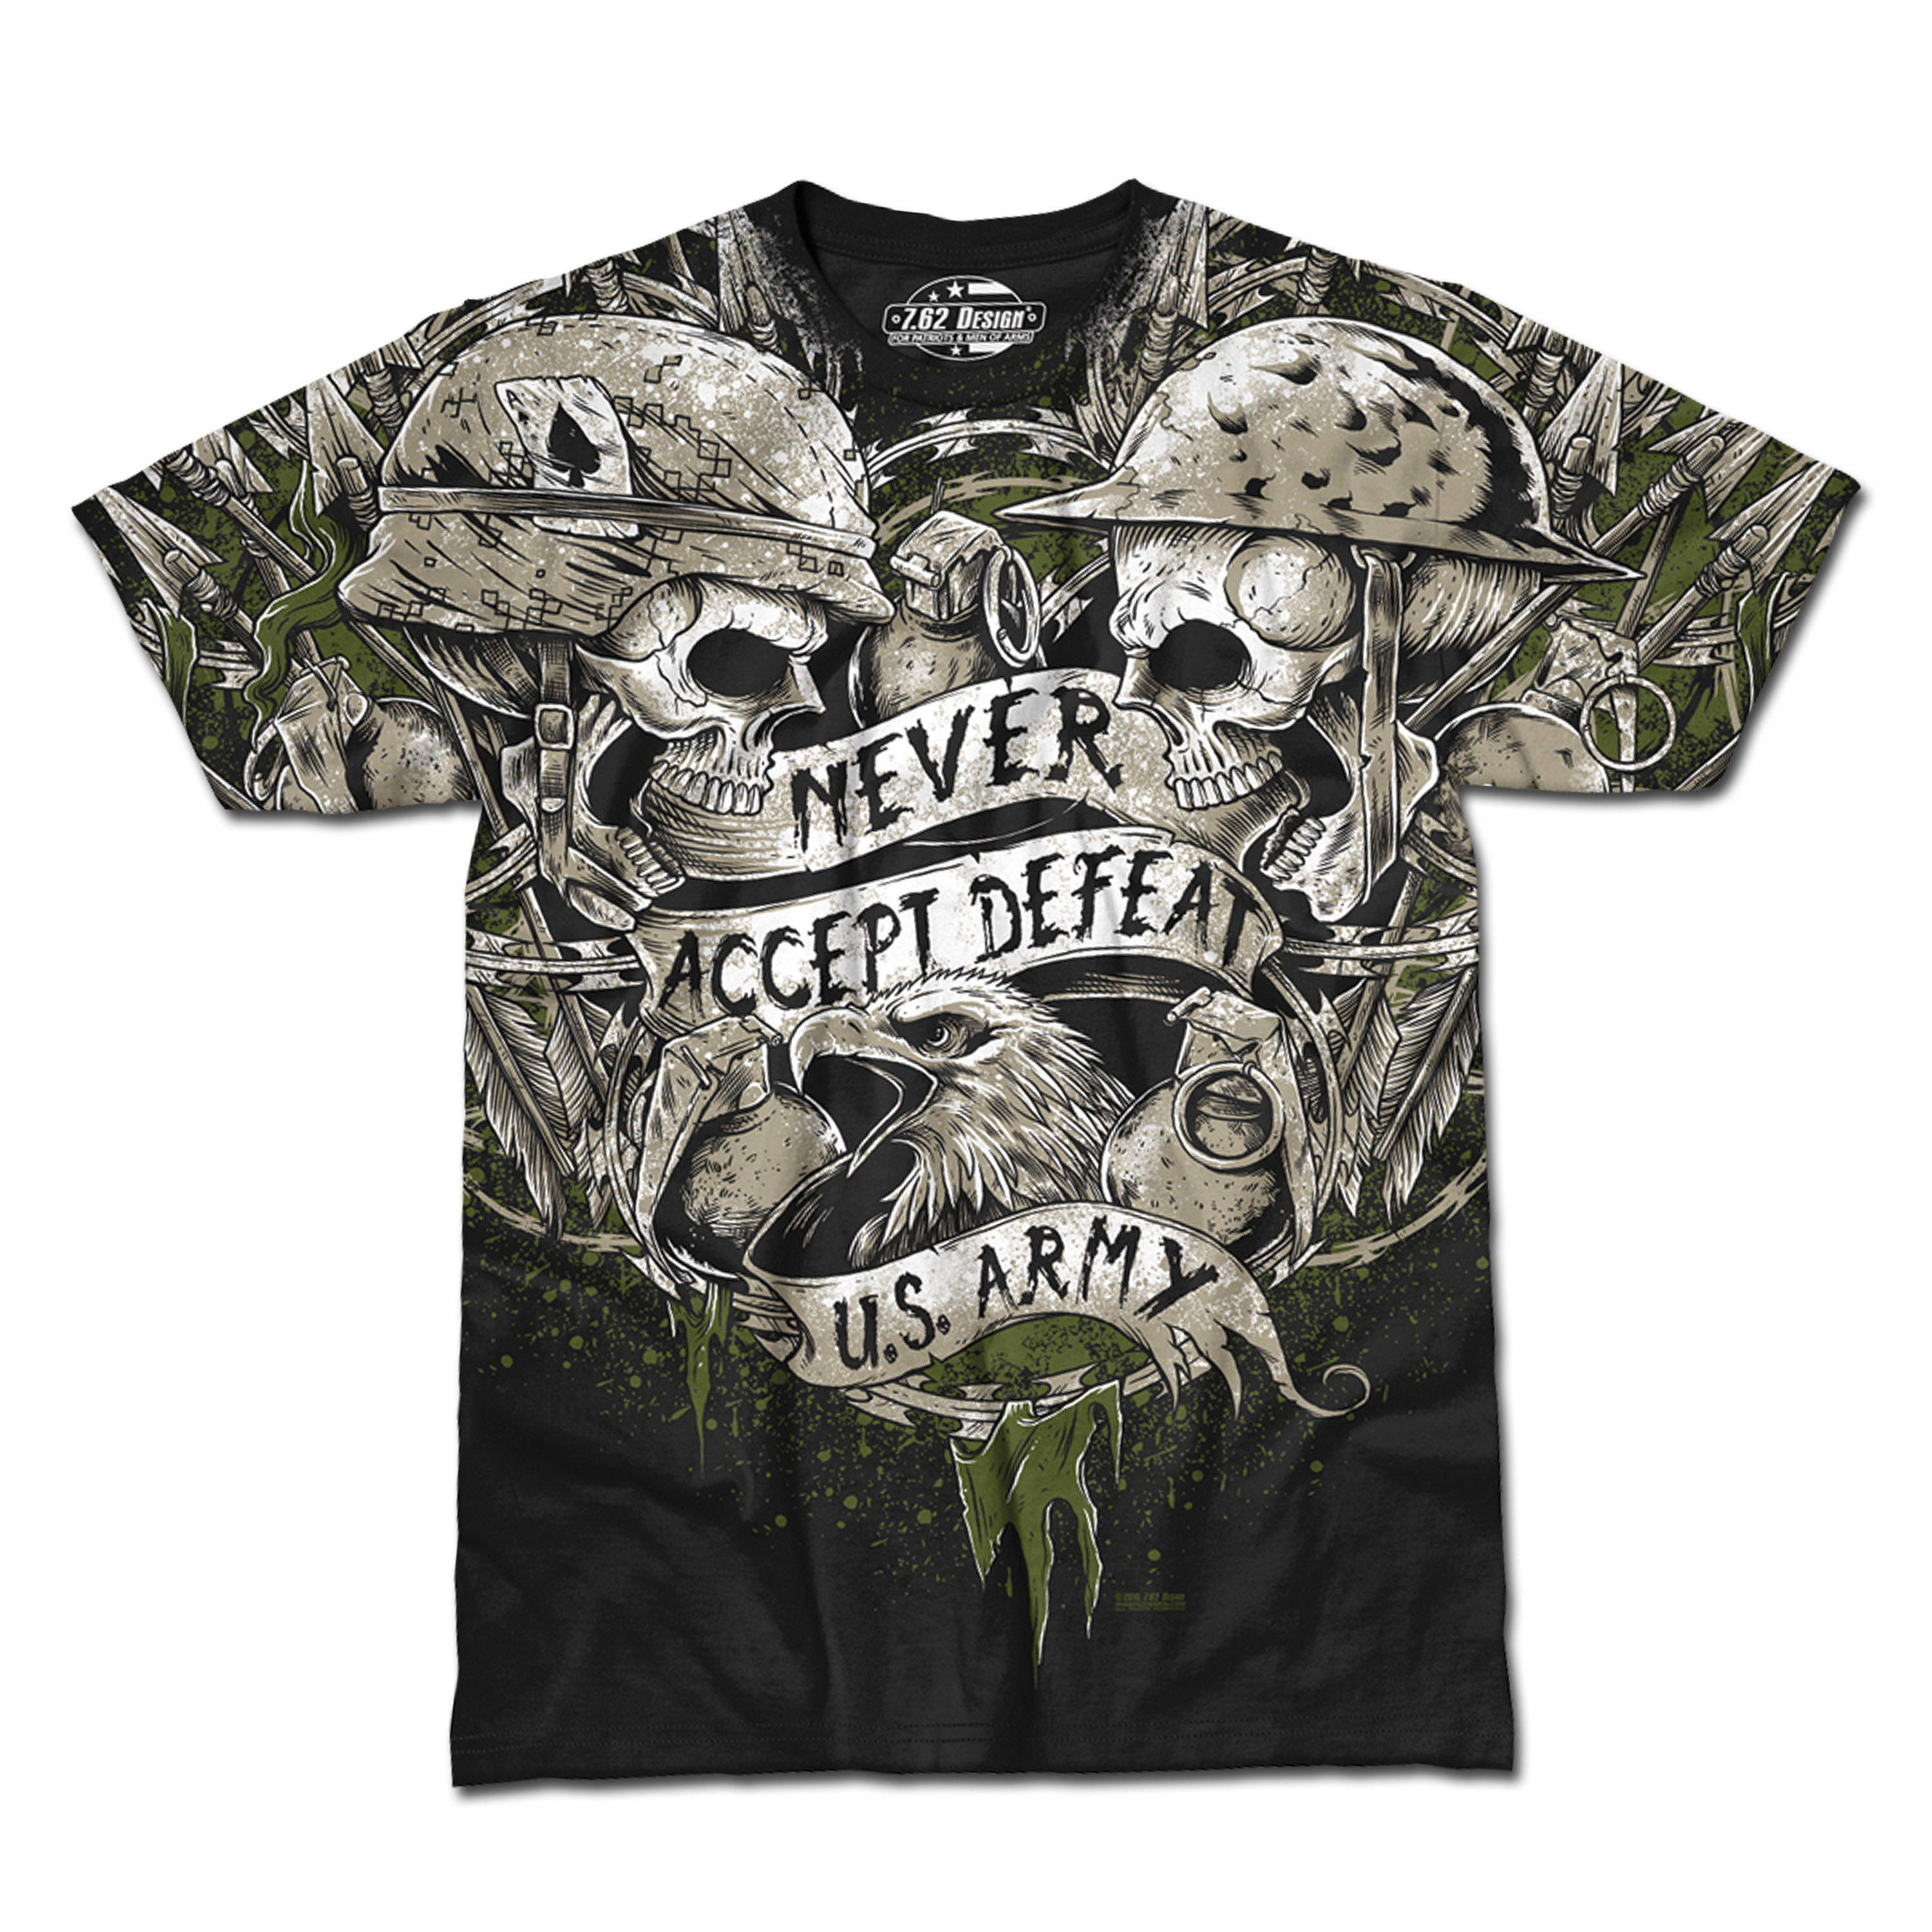 T-Shirt Army Never Accept Defeat